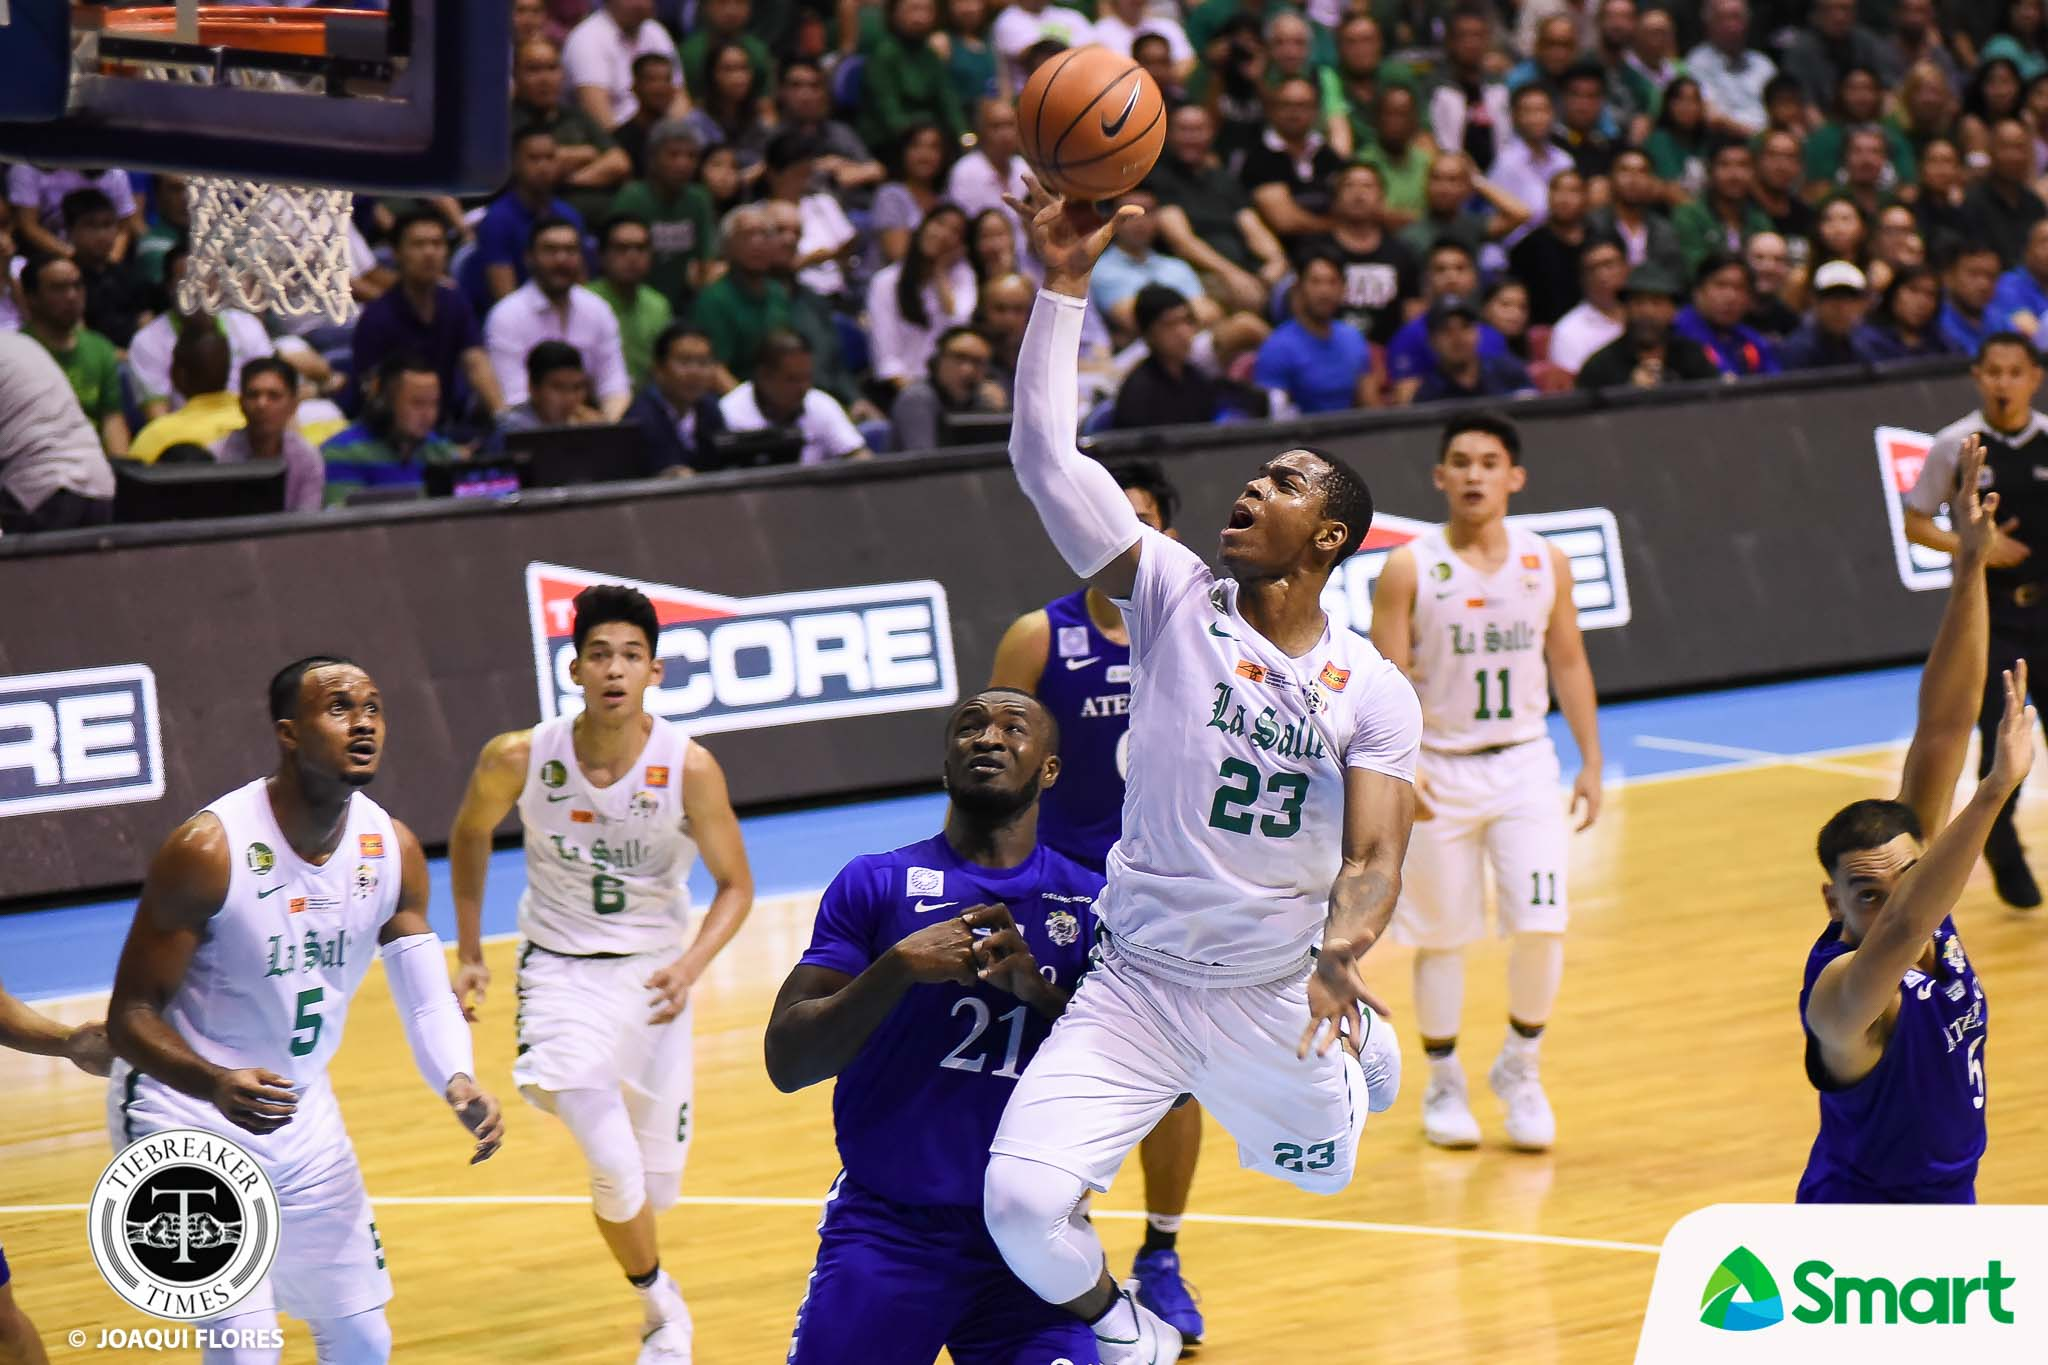 Philippine Sports News - Tiebreaker Times Ben Mbala on recovery against Isaac Go: 'Never quit on defense' Basketball DLSU News UAAP  UAAP Season 80 Men's Basketball UAAP Season 80 DLSU Men's Basketball Ben Mbala Aldin Ayo